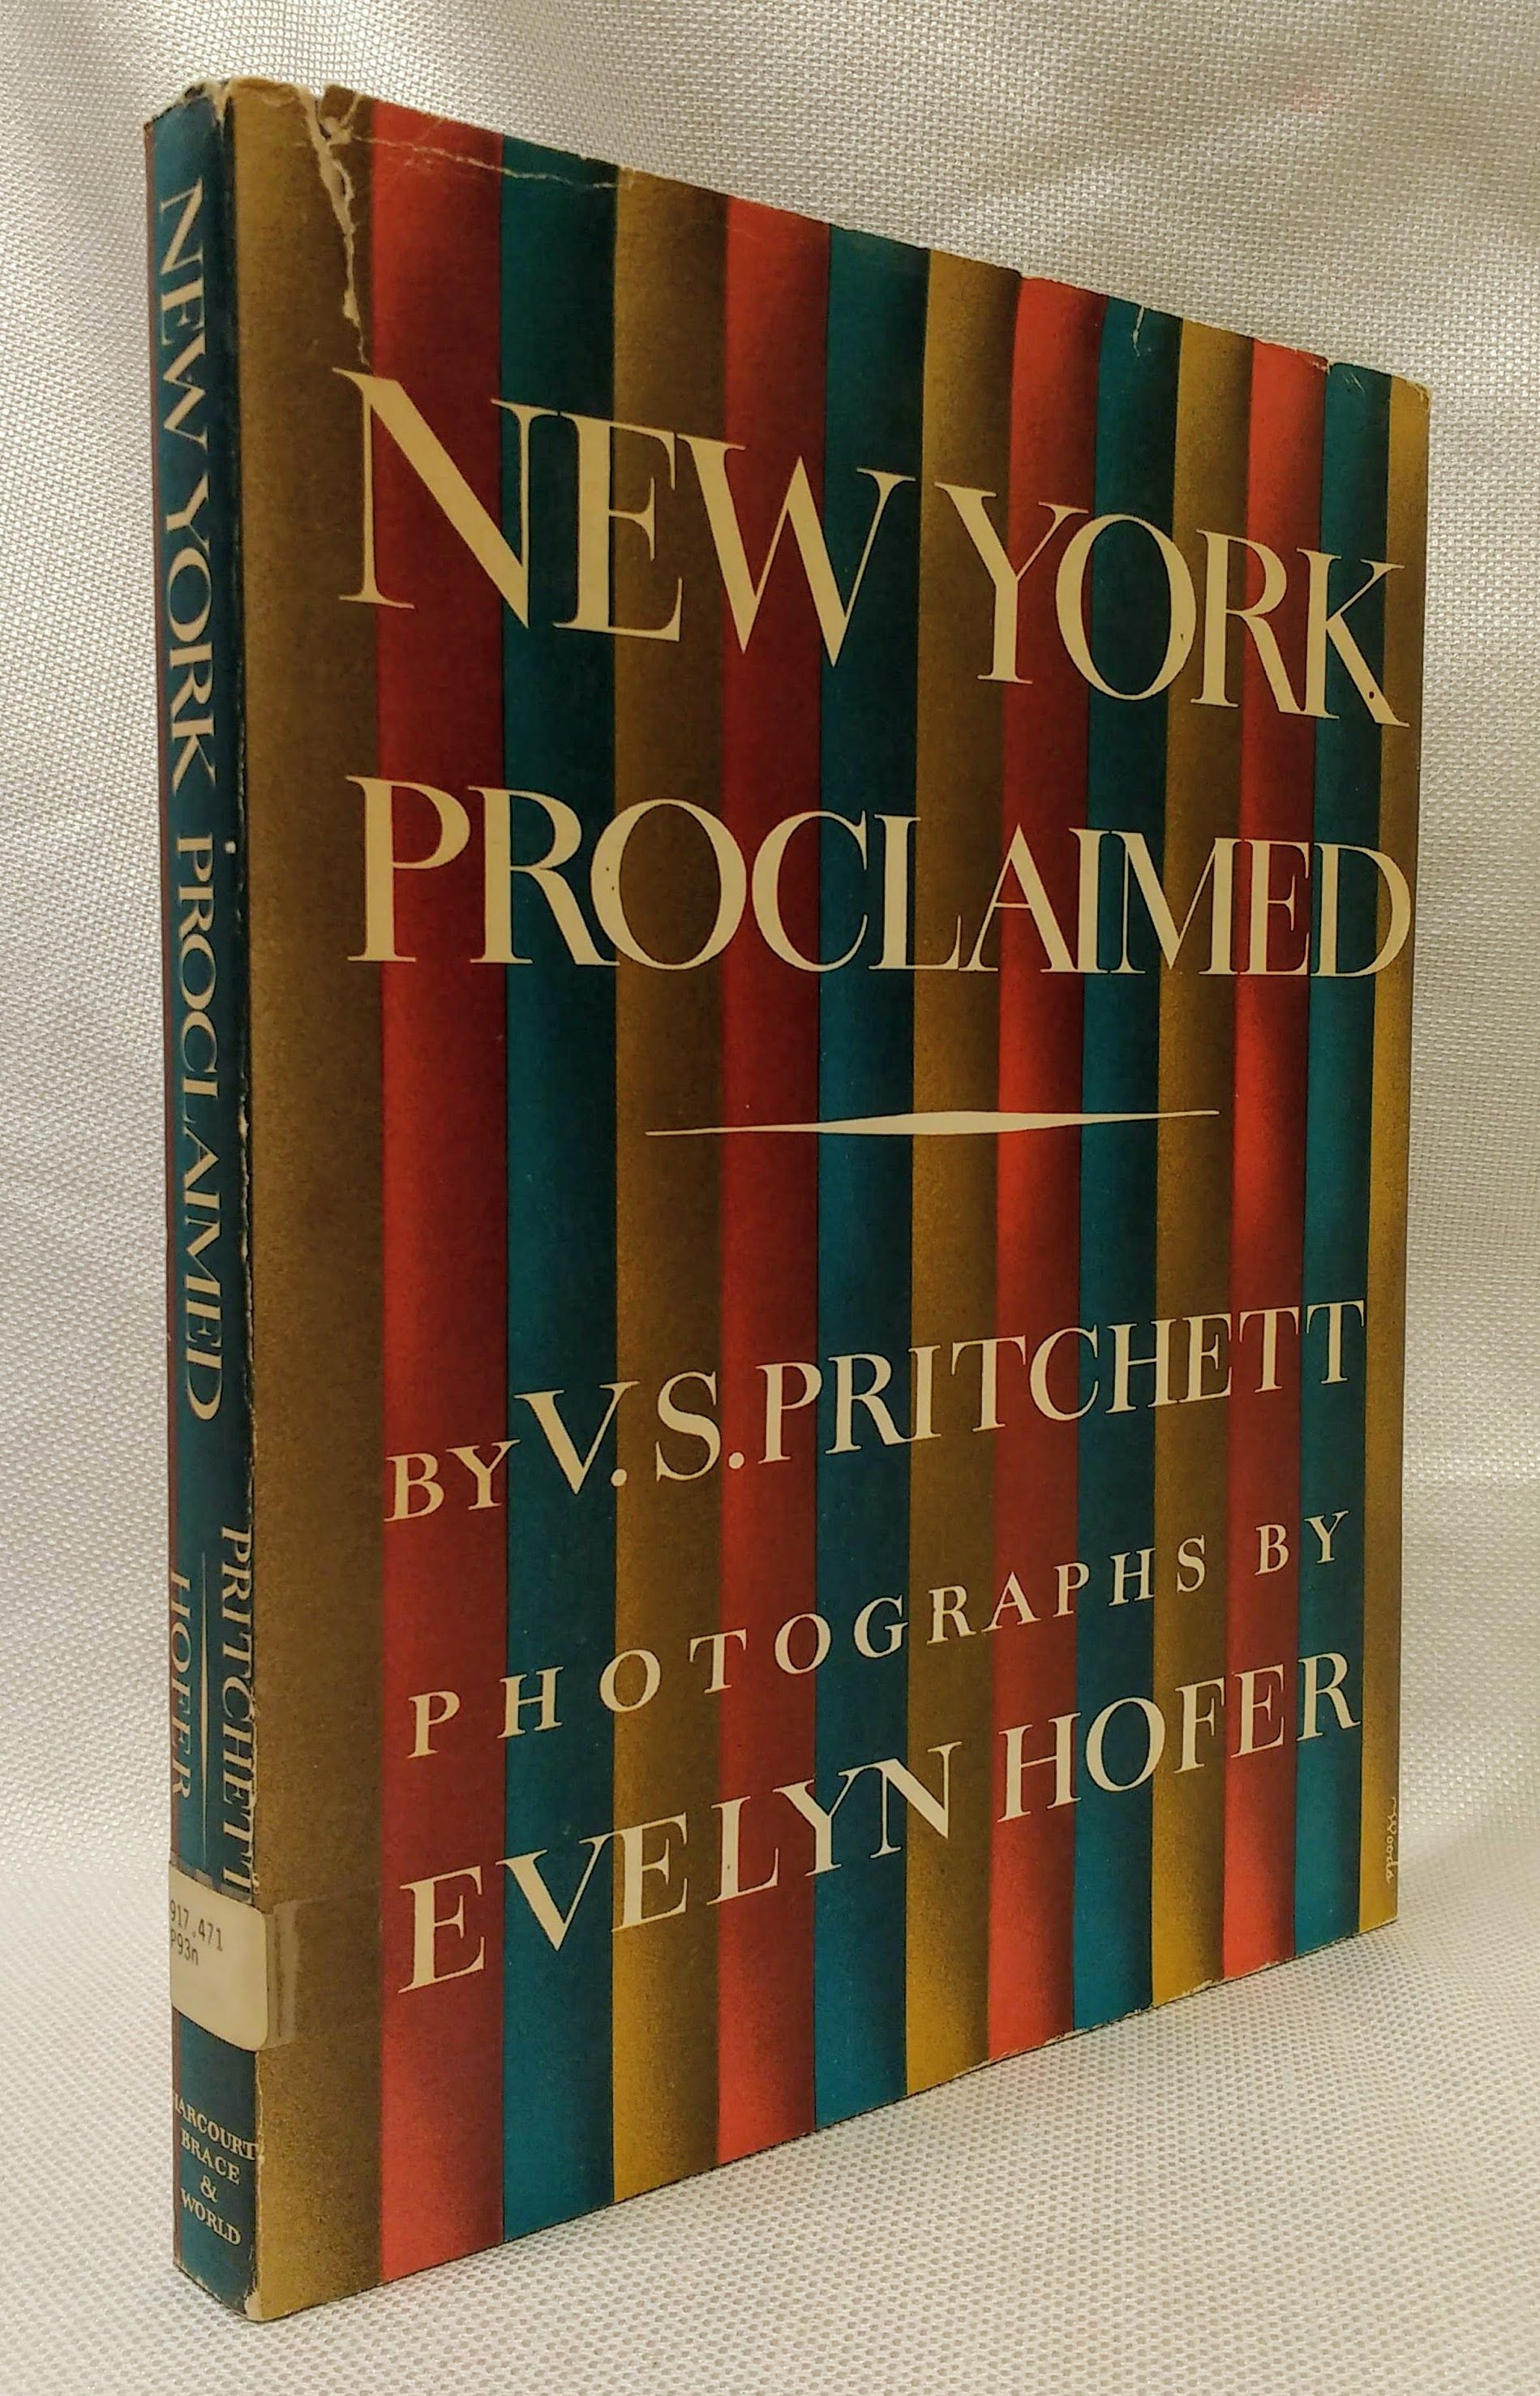 New York Proclaimed, V.S. Pritchett; Evelyn Hofer [Photographer]